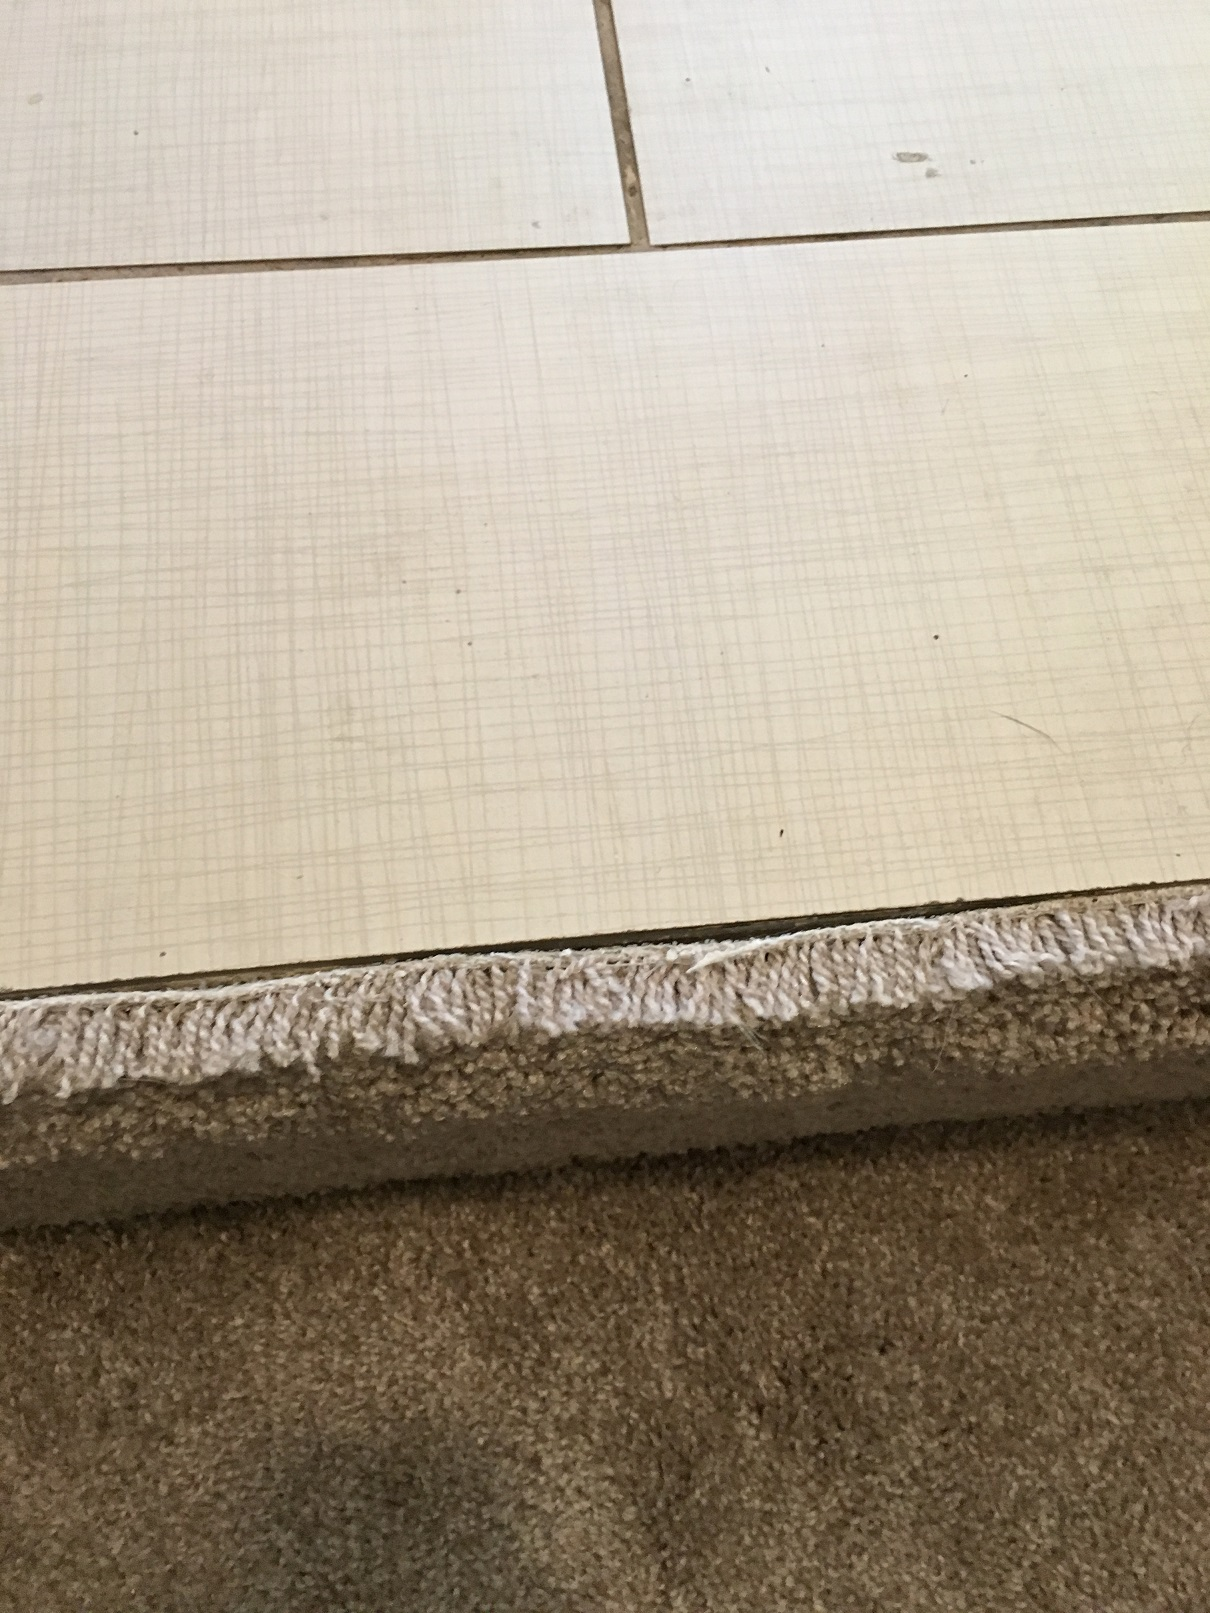 carpet z bar. install carpet z bar strip steam cleaner img 0190g stair edge solutions with tile and how